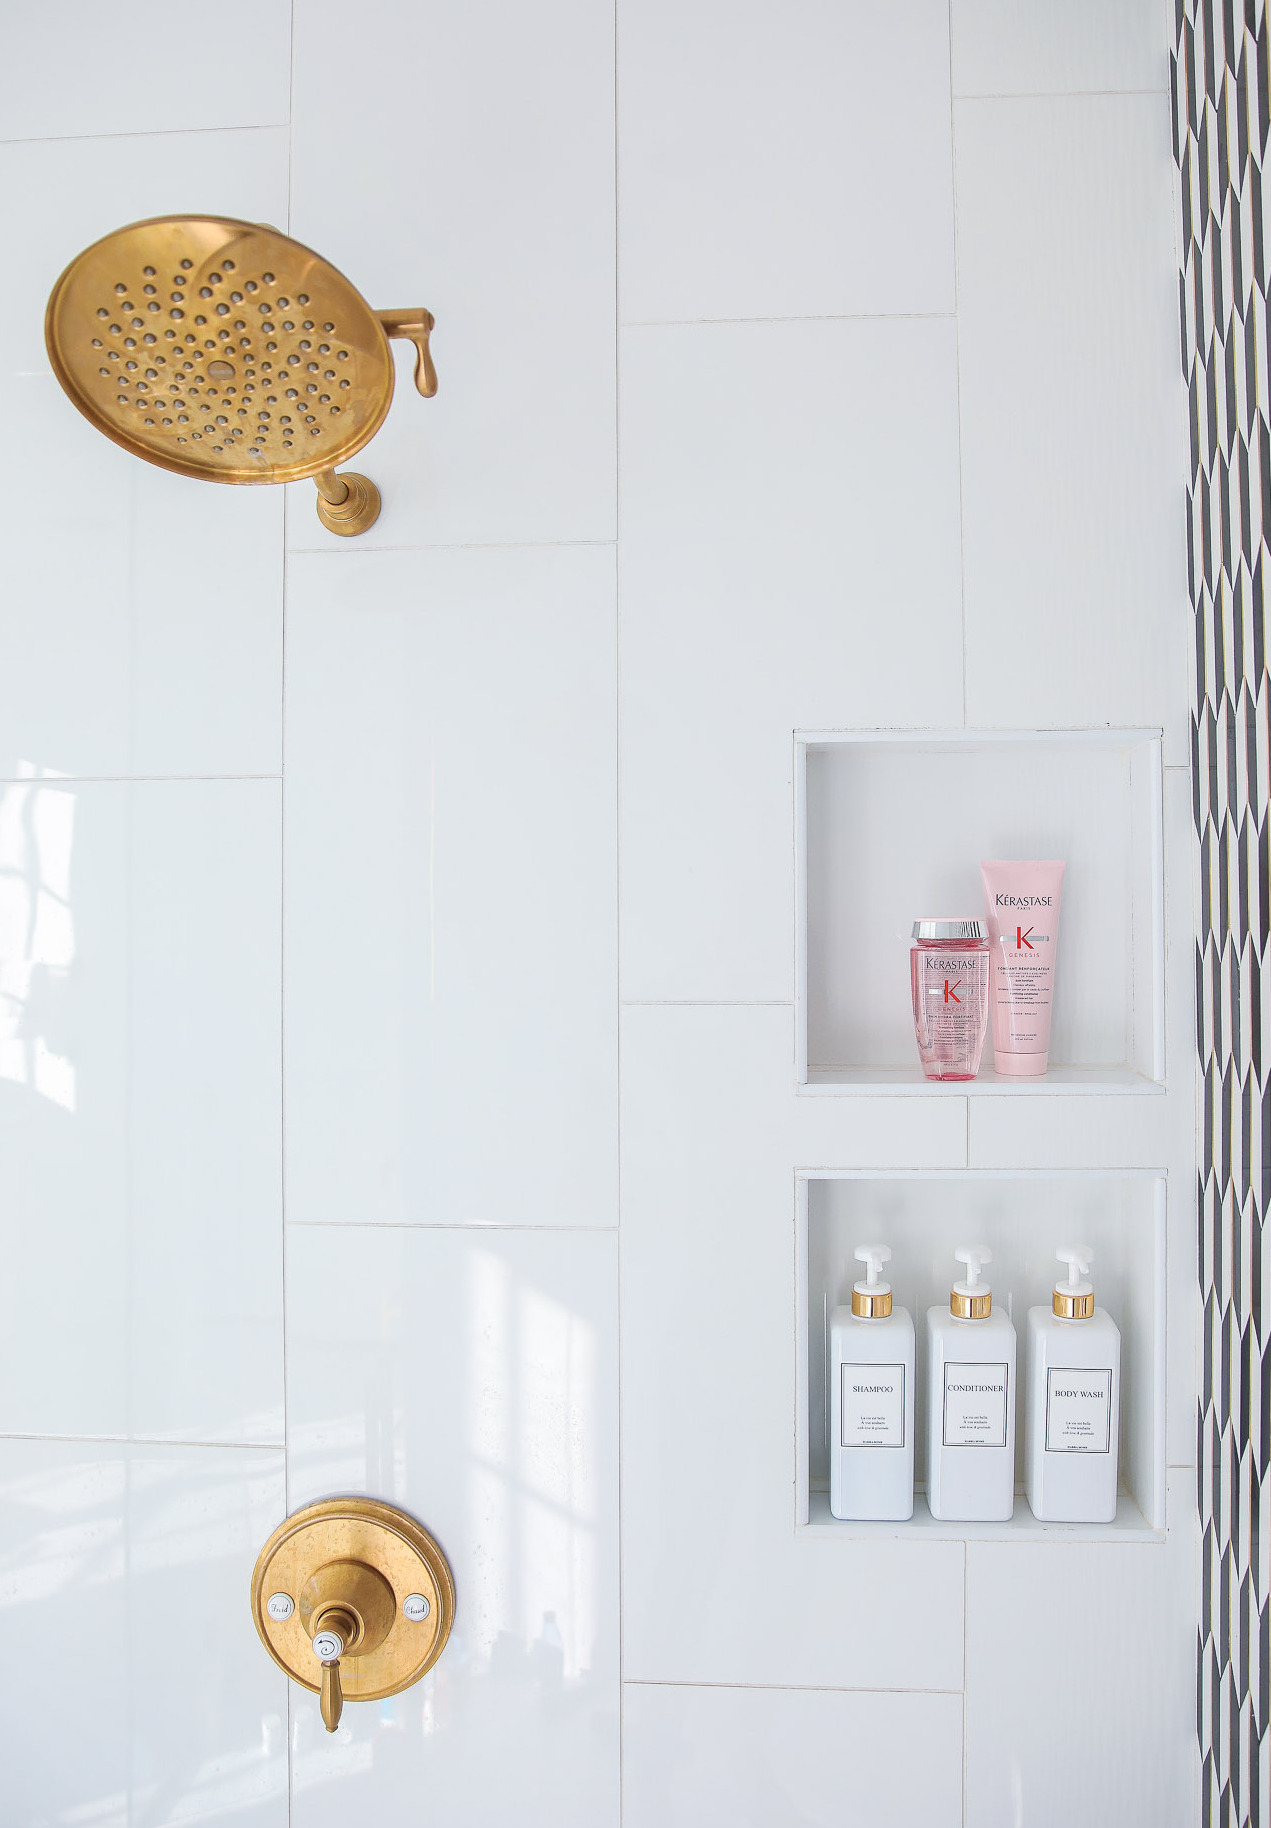 Top Picks by popular US life and style blog, The Sweetest Thing: image of Kerastase products in a white tile shower with a a gold faucet and gold shower head.